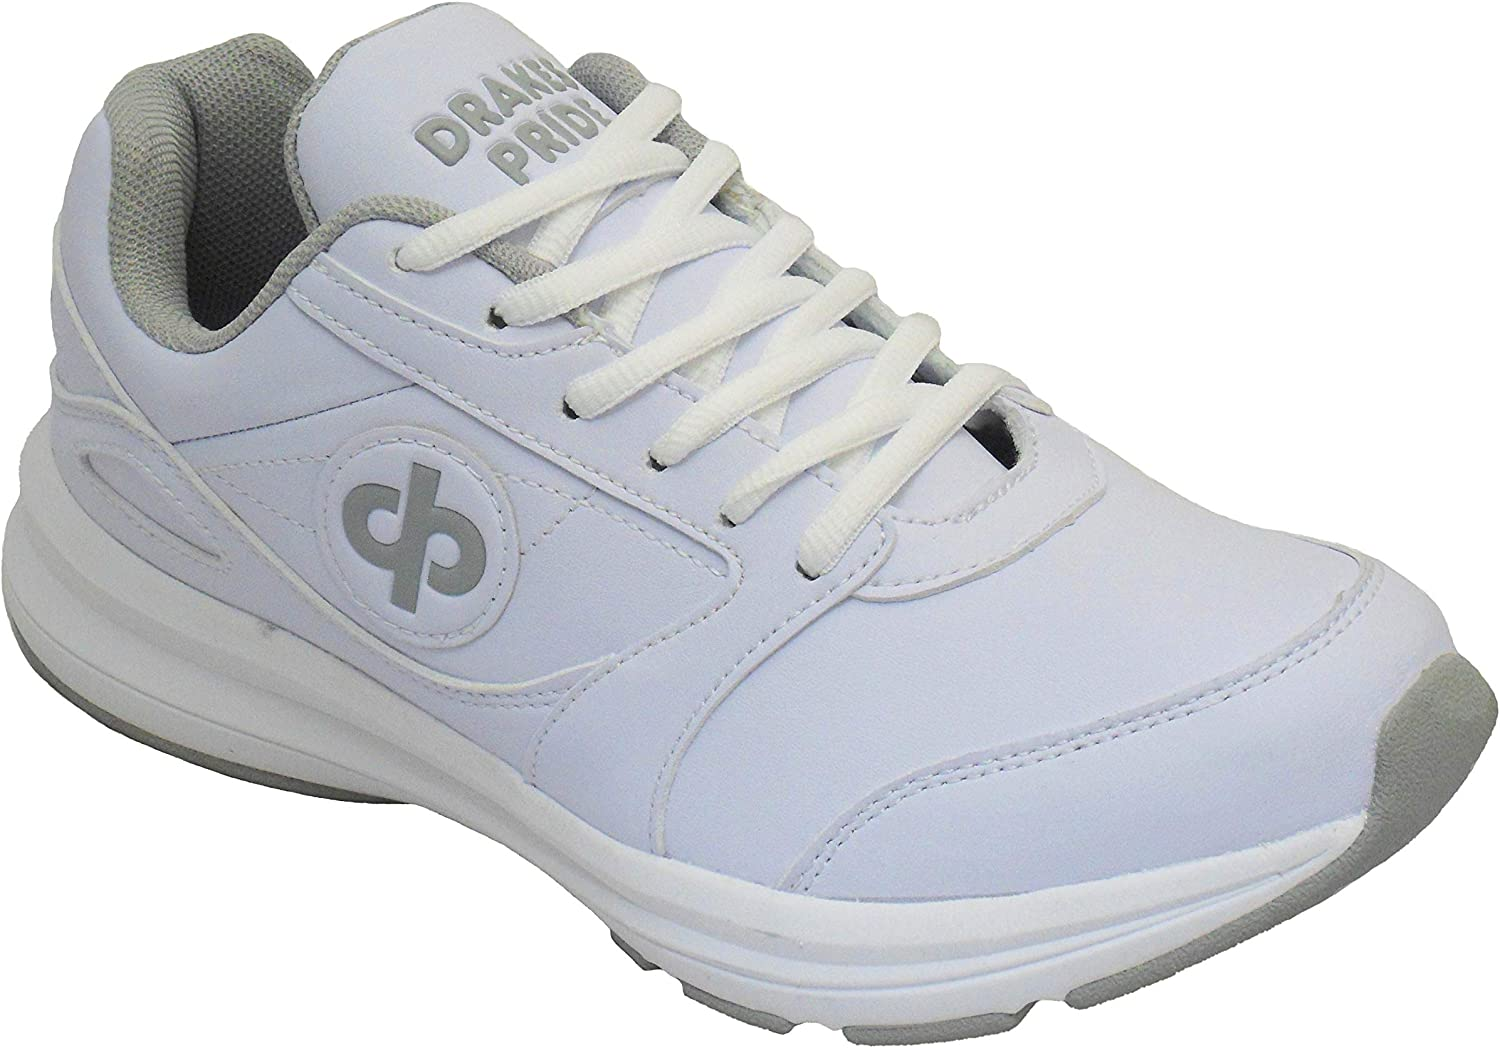 Drakes Pride Aeriel WIDE FIT Lawn Bowling Trainers